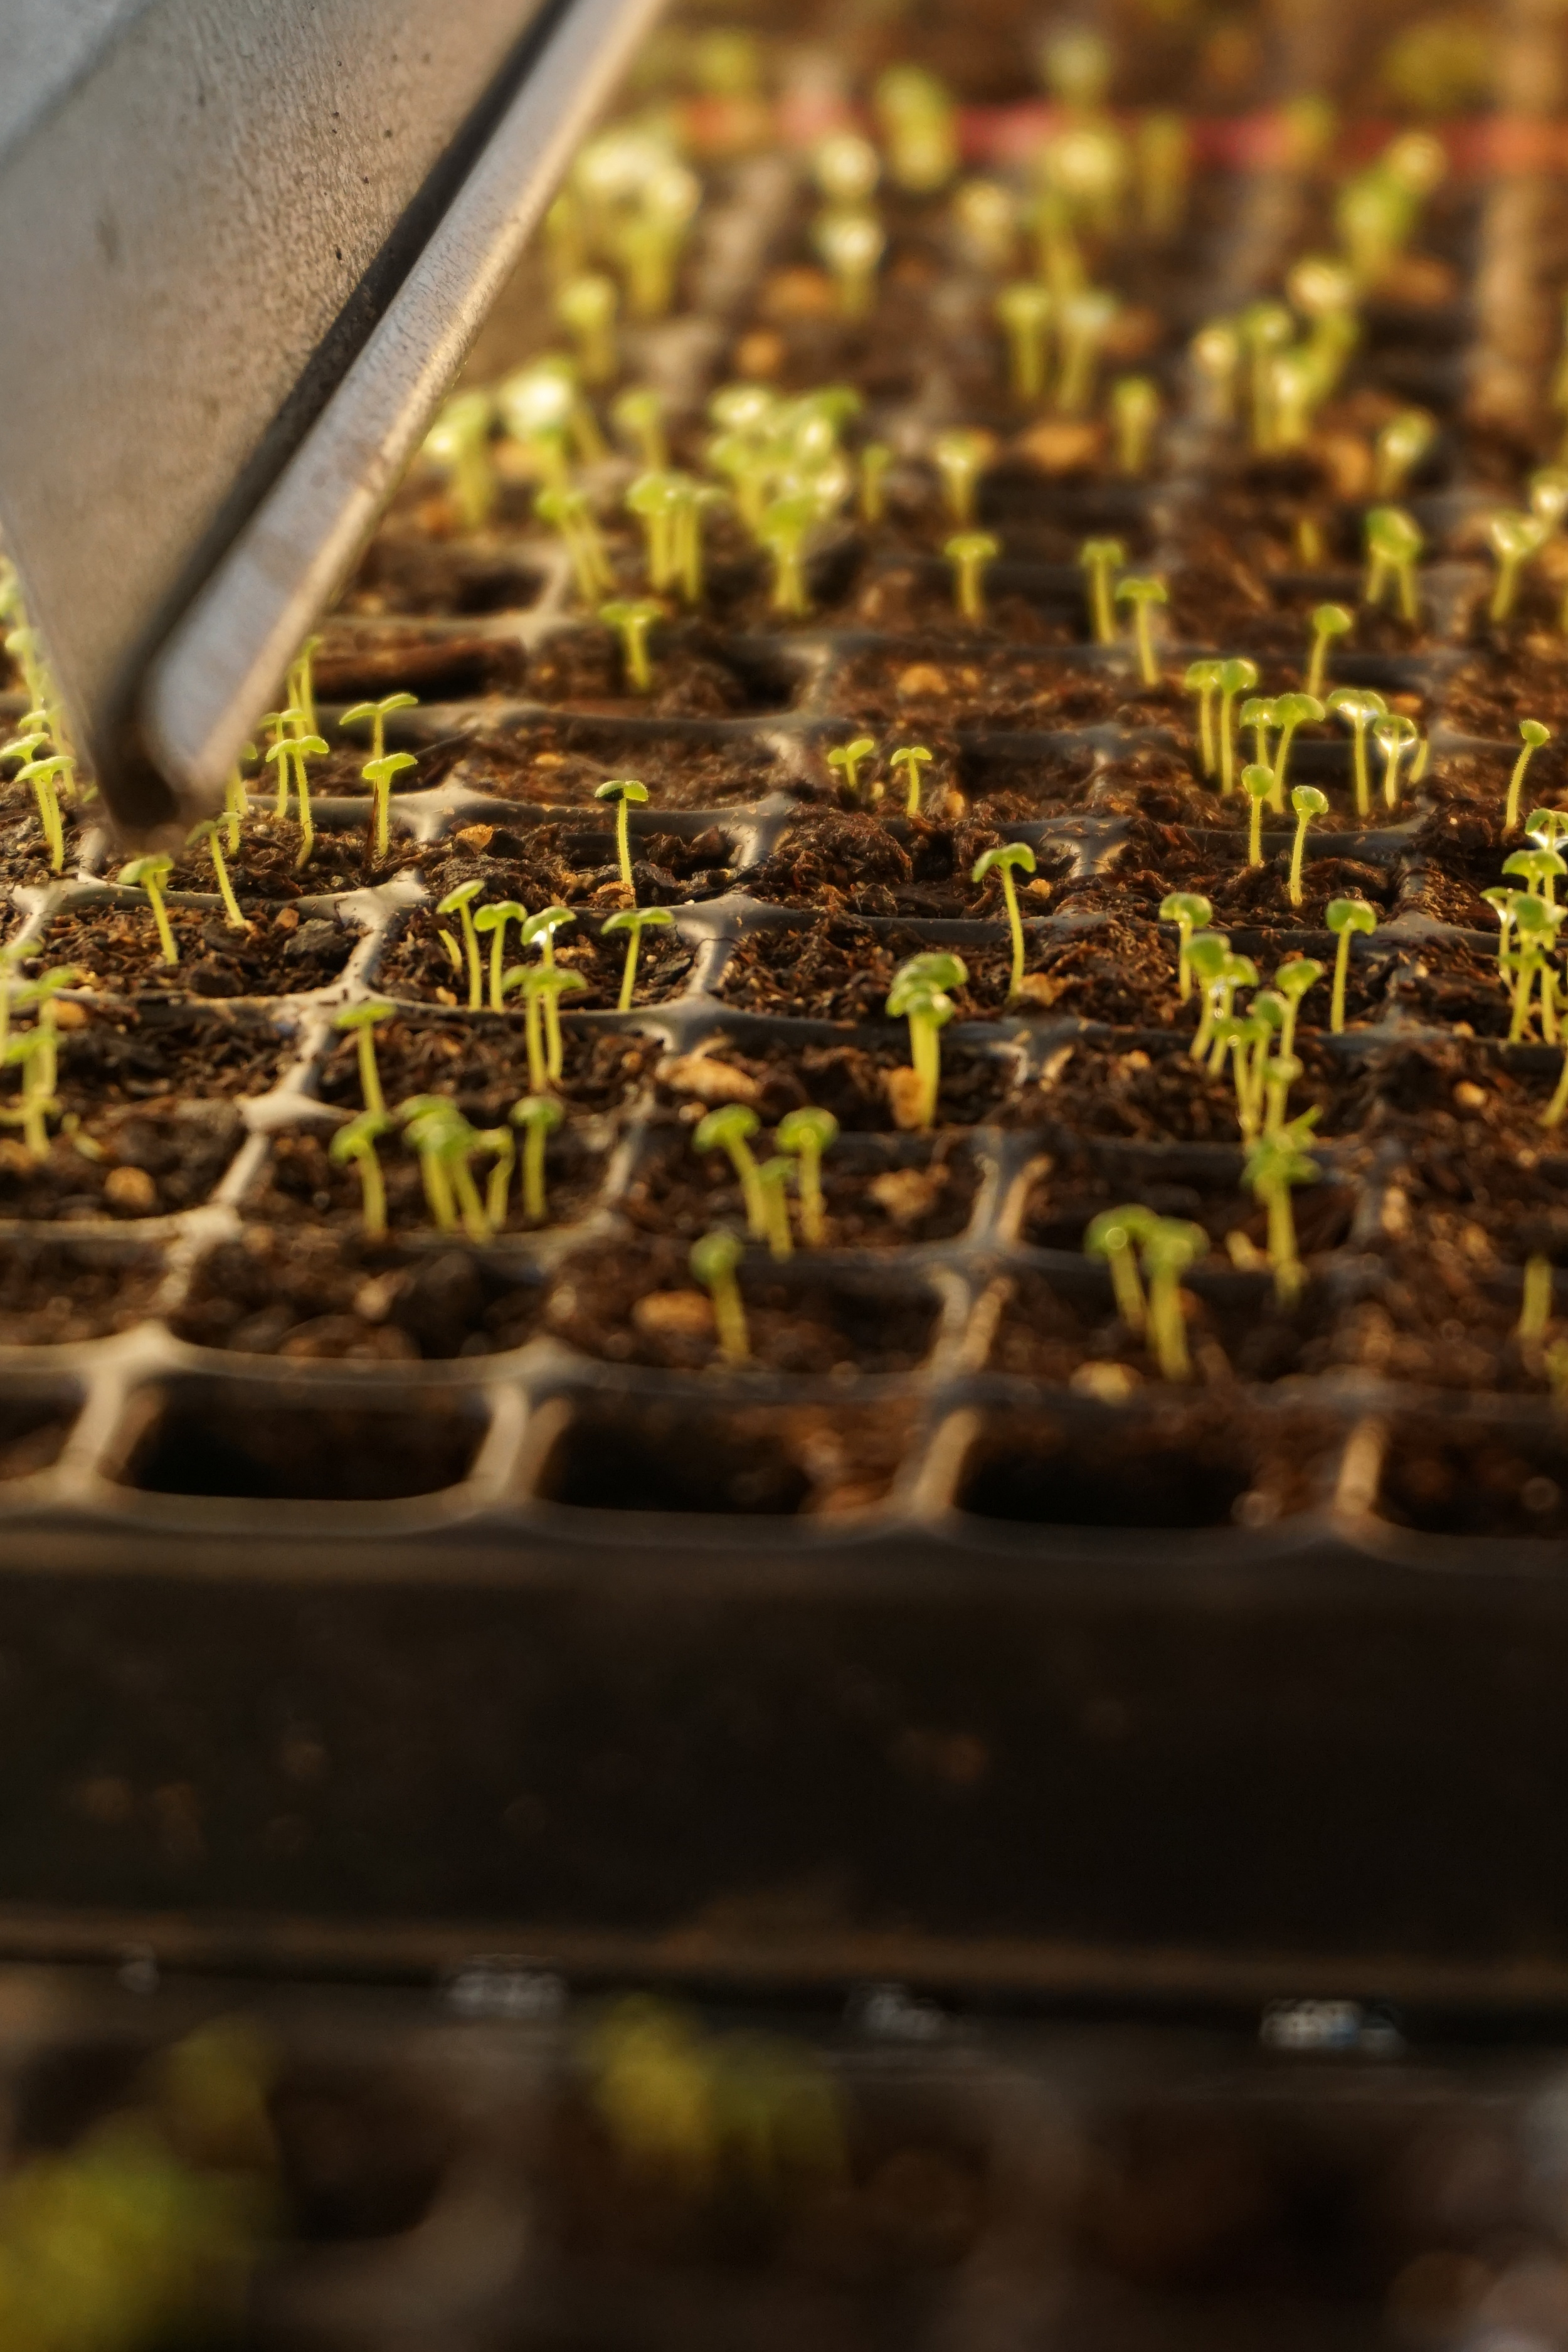 snapdragons will be some of the first flowers our CSA members get! their seedlings are so tiny